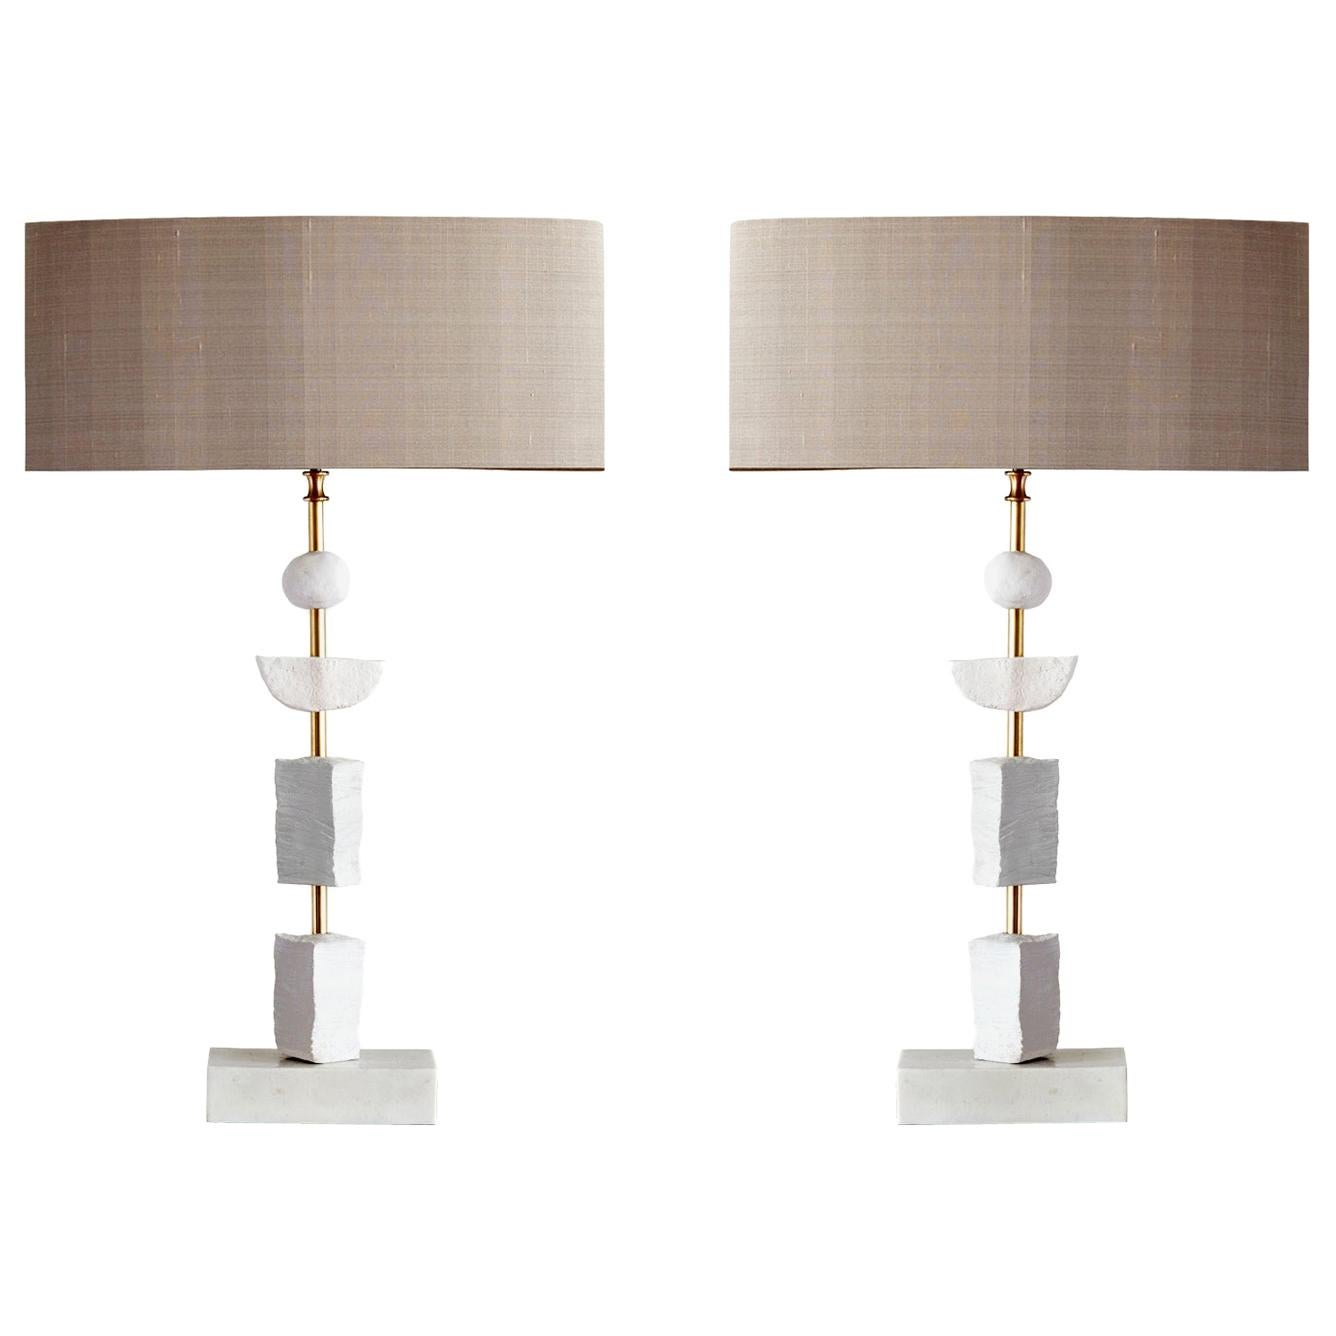 Pair of Contemporary European Table Lamp Synergy in White by Margit Wittig